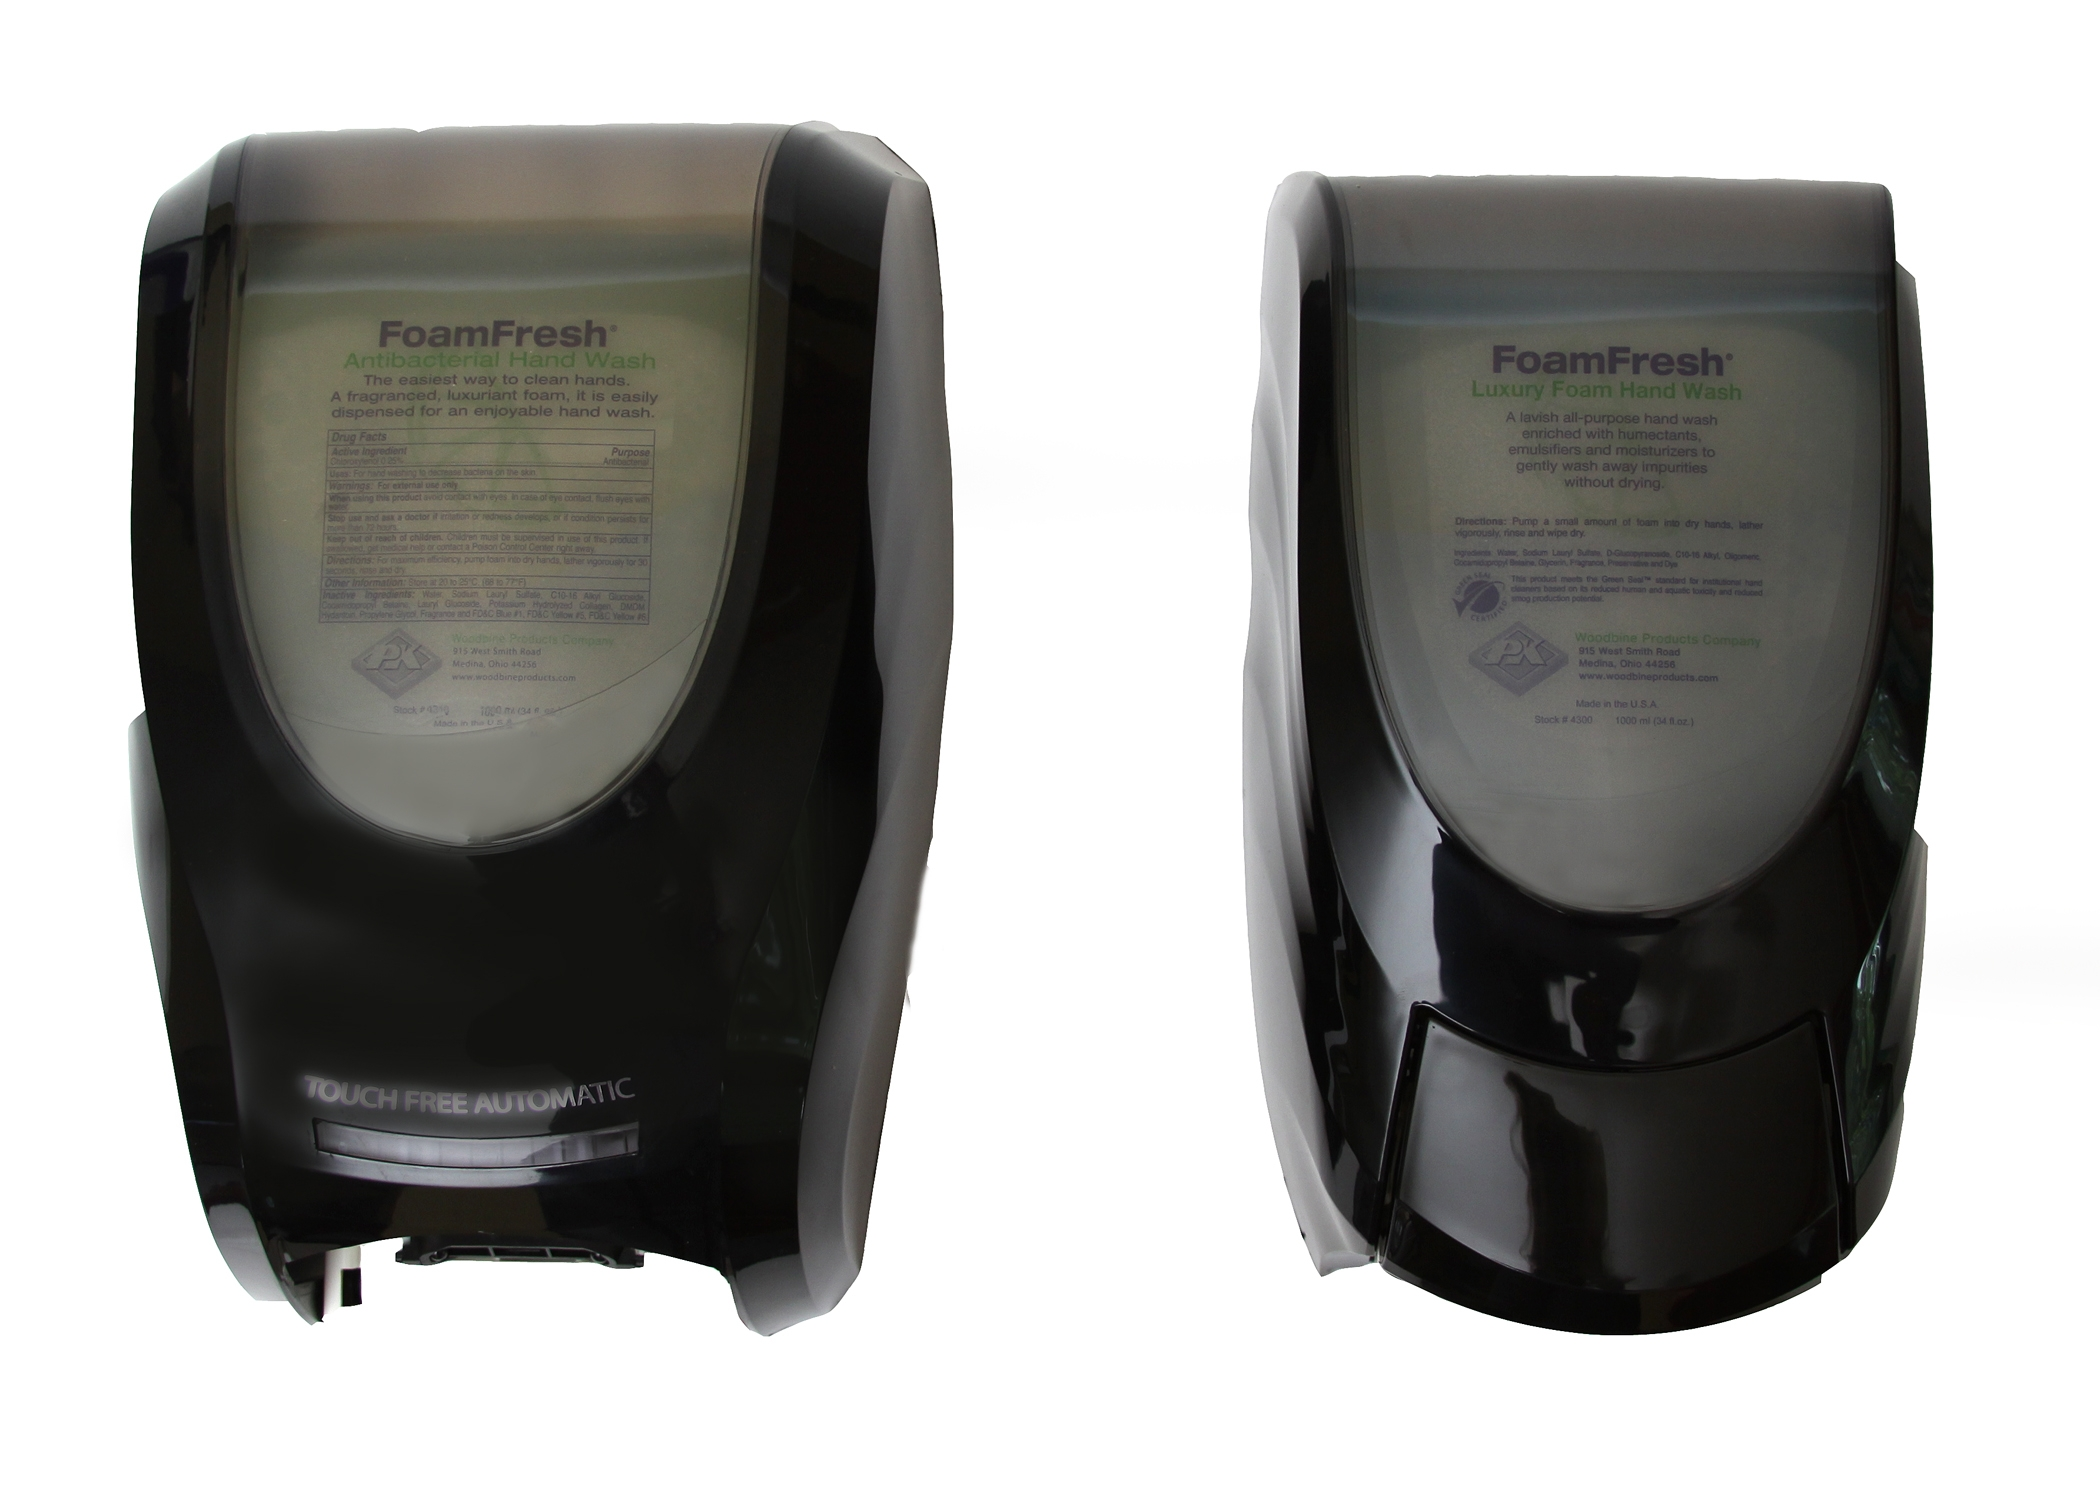 #8007 Manual/ #8107 Automatic (Duo Dispensers)